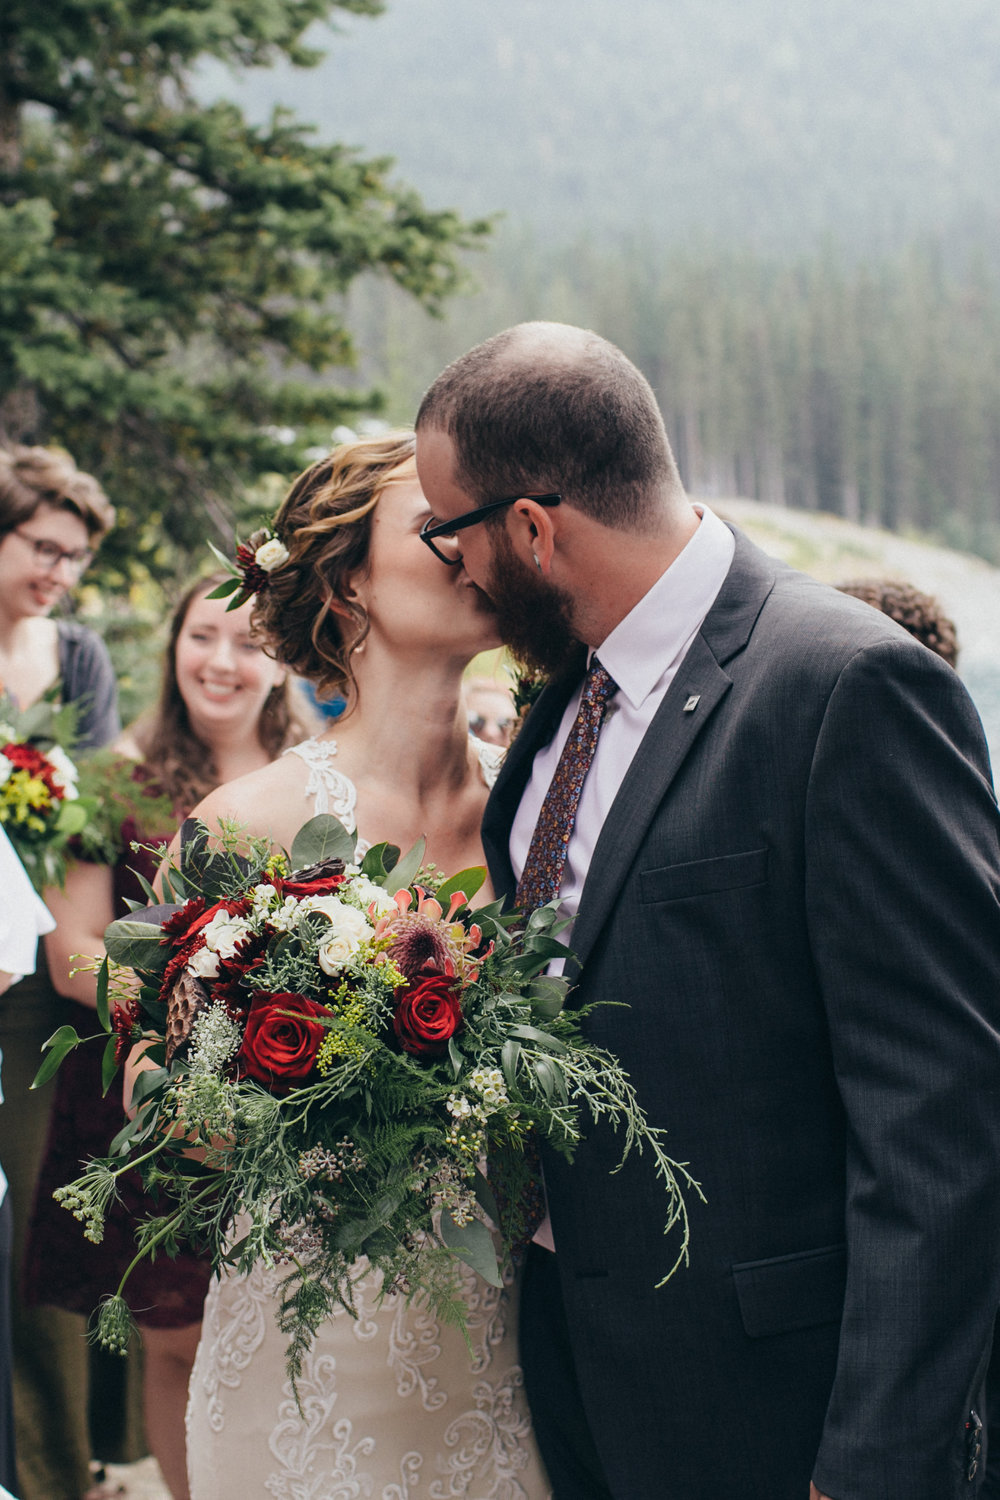 wedding florist based in calgary, cochrane and airdrie that is inexpensive